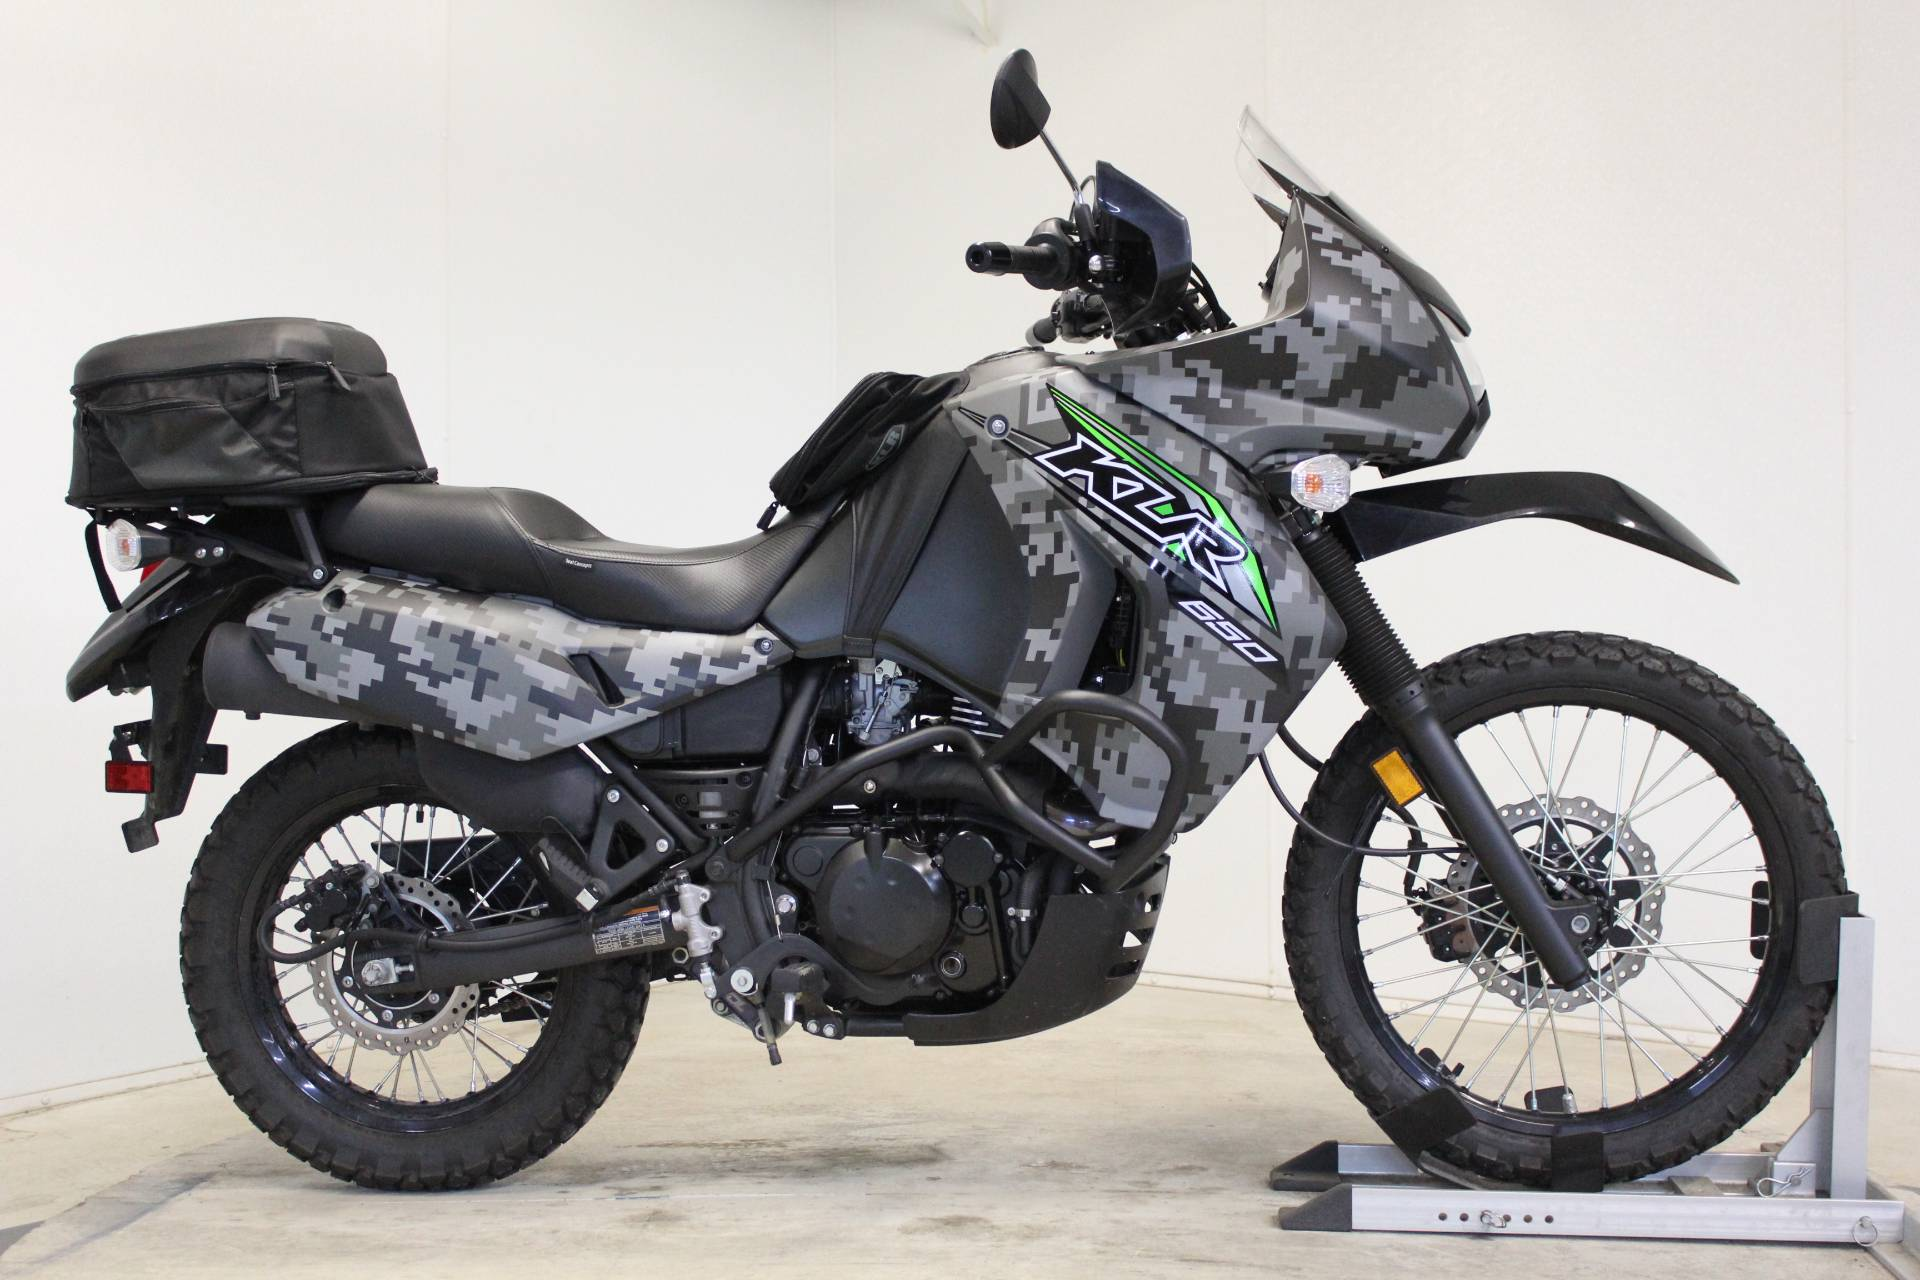 2018 Kawasaki KLR 650 Camo in Pittsfield, Massachusetts - Photo 1